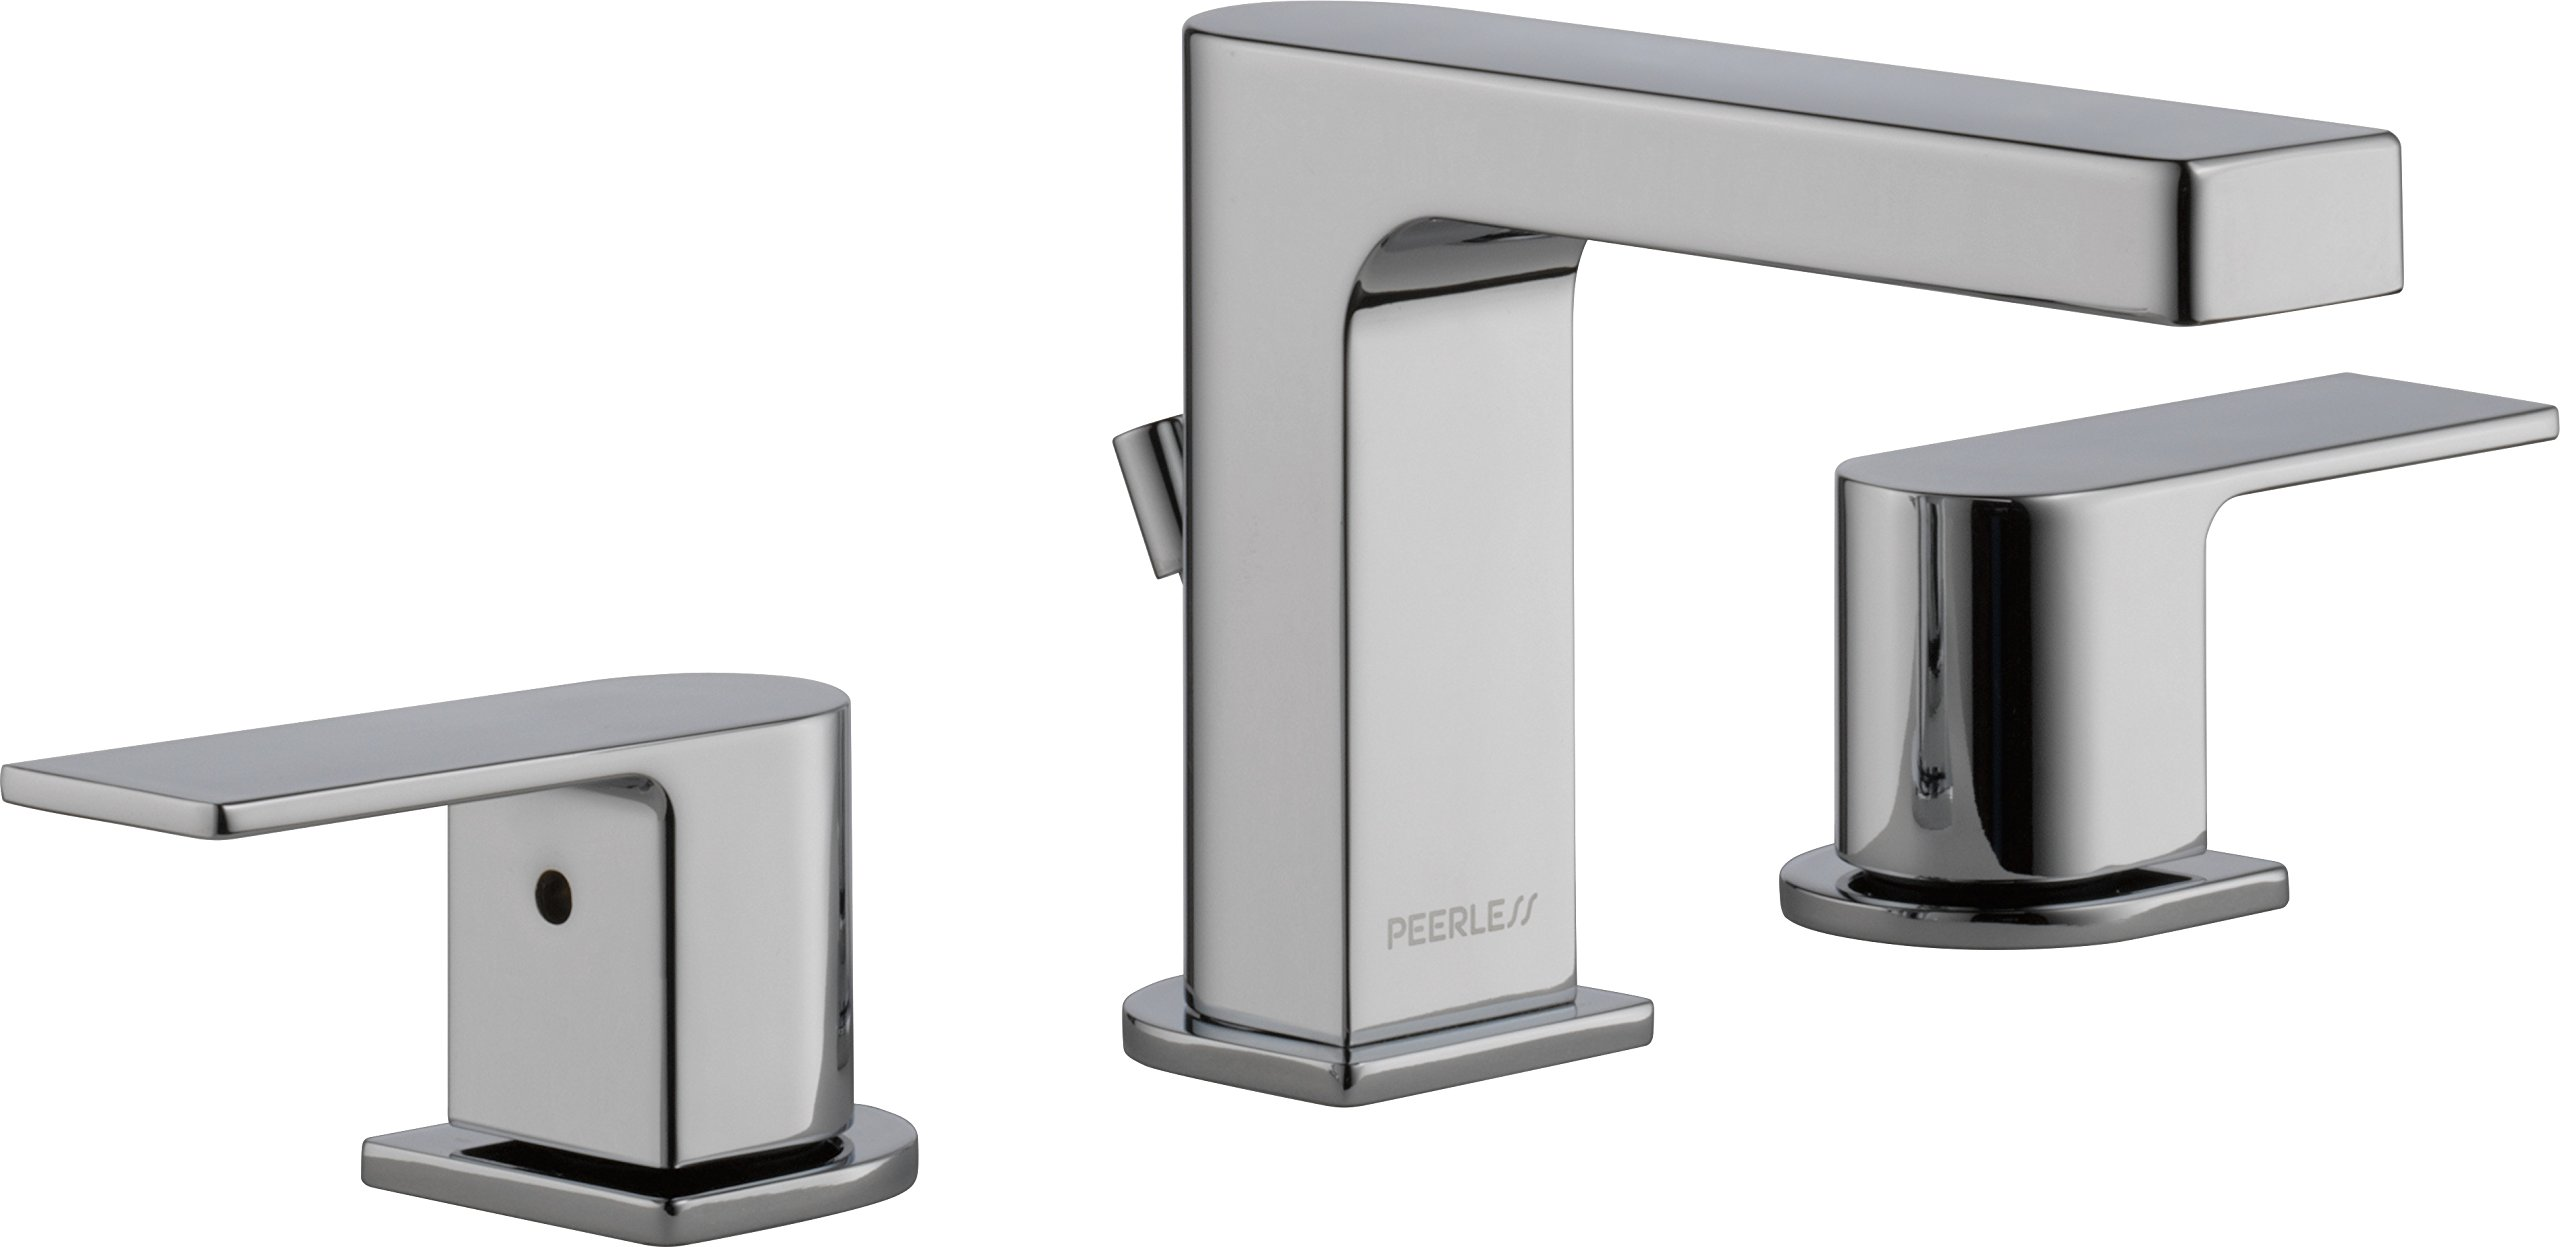 Peerless Xander 2-Handle Widespread Bathroom Faucet with Pop-Up Drain Assembly, Chrome P3519LF by DELTA FAUCET